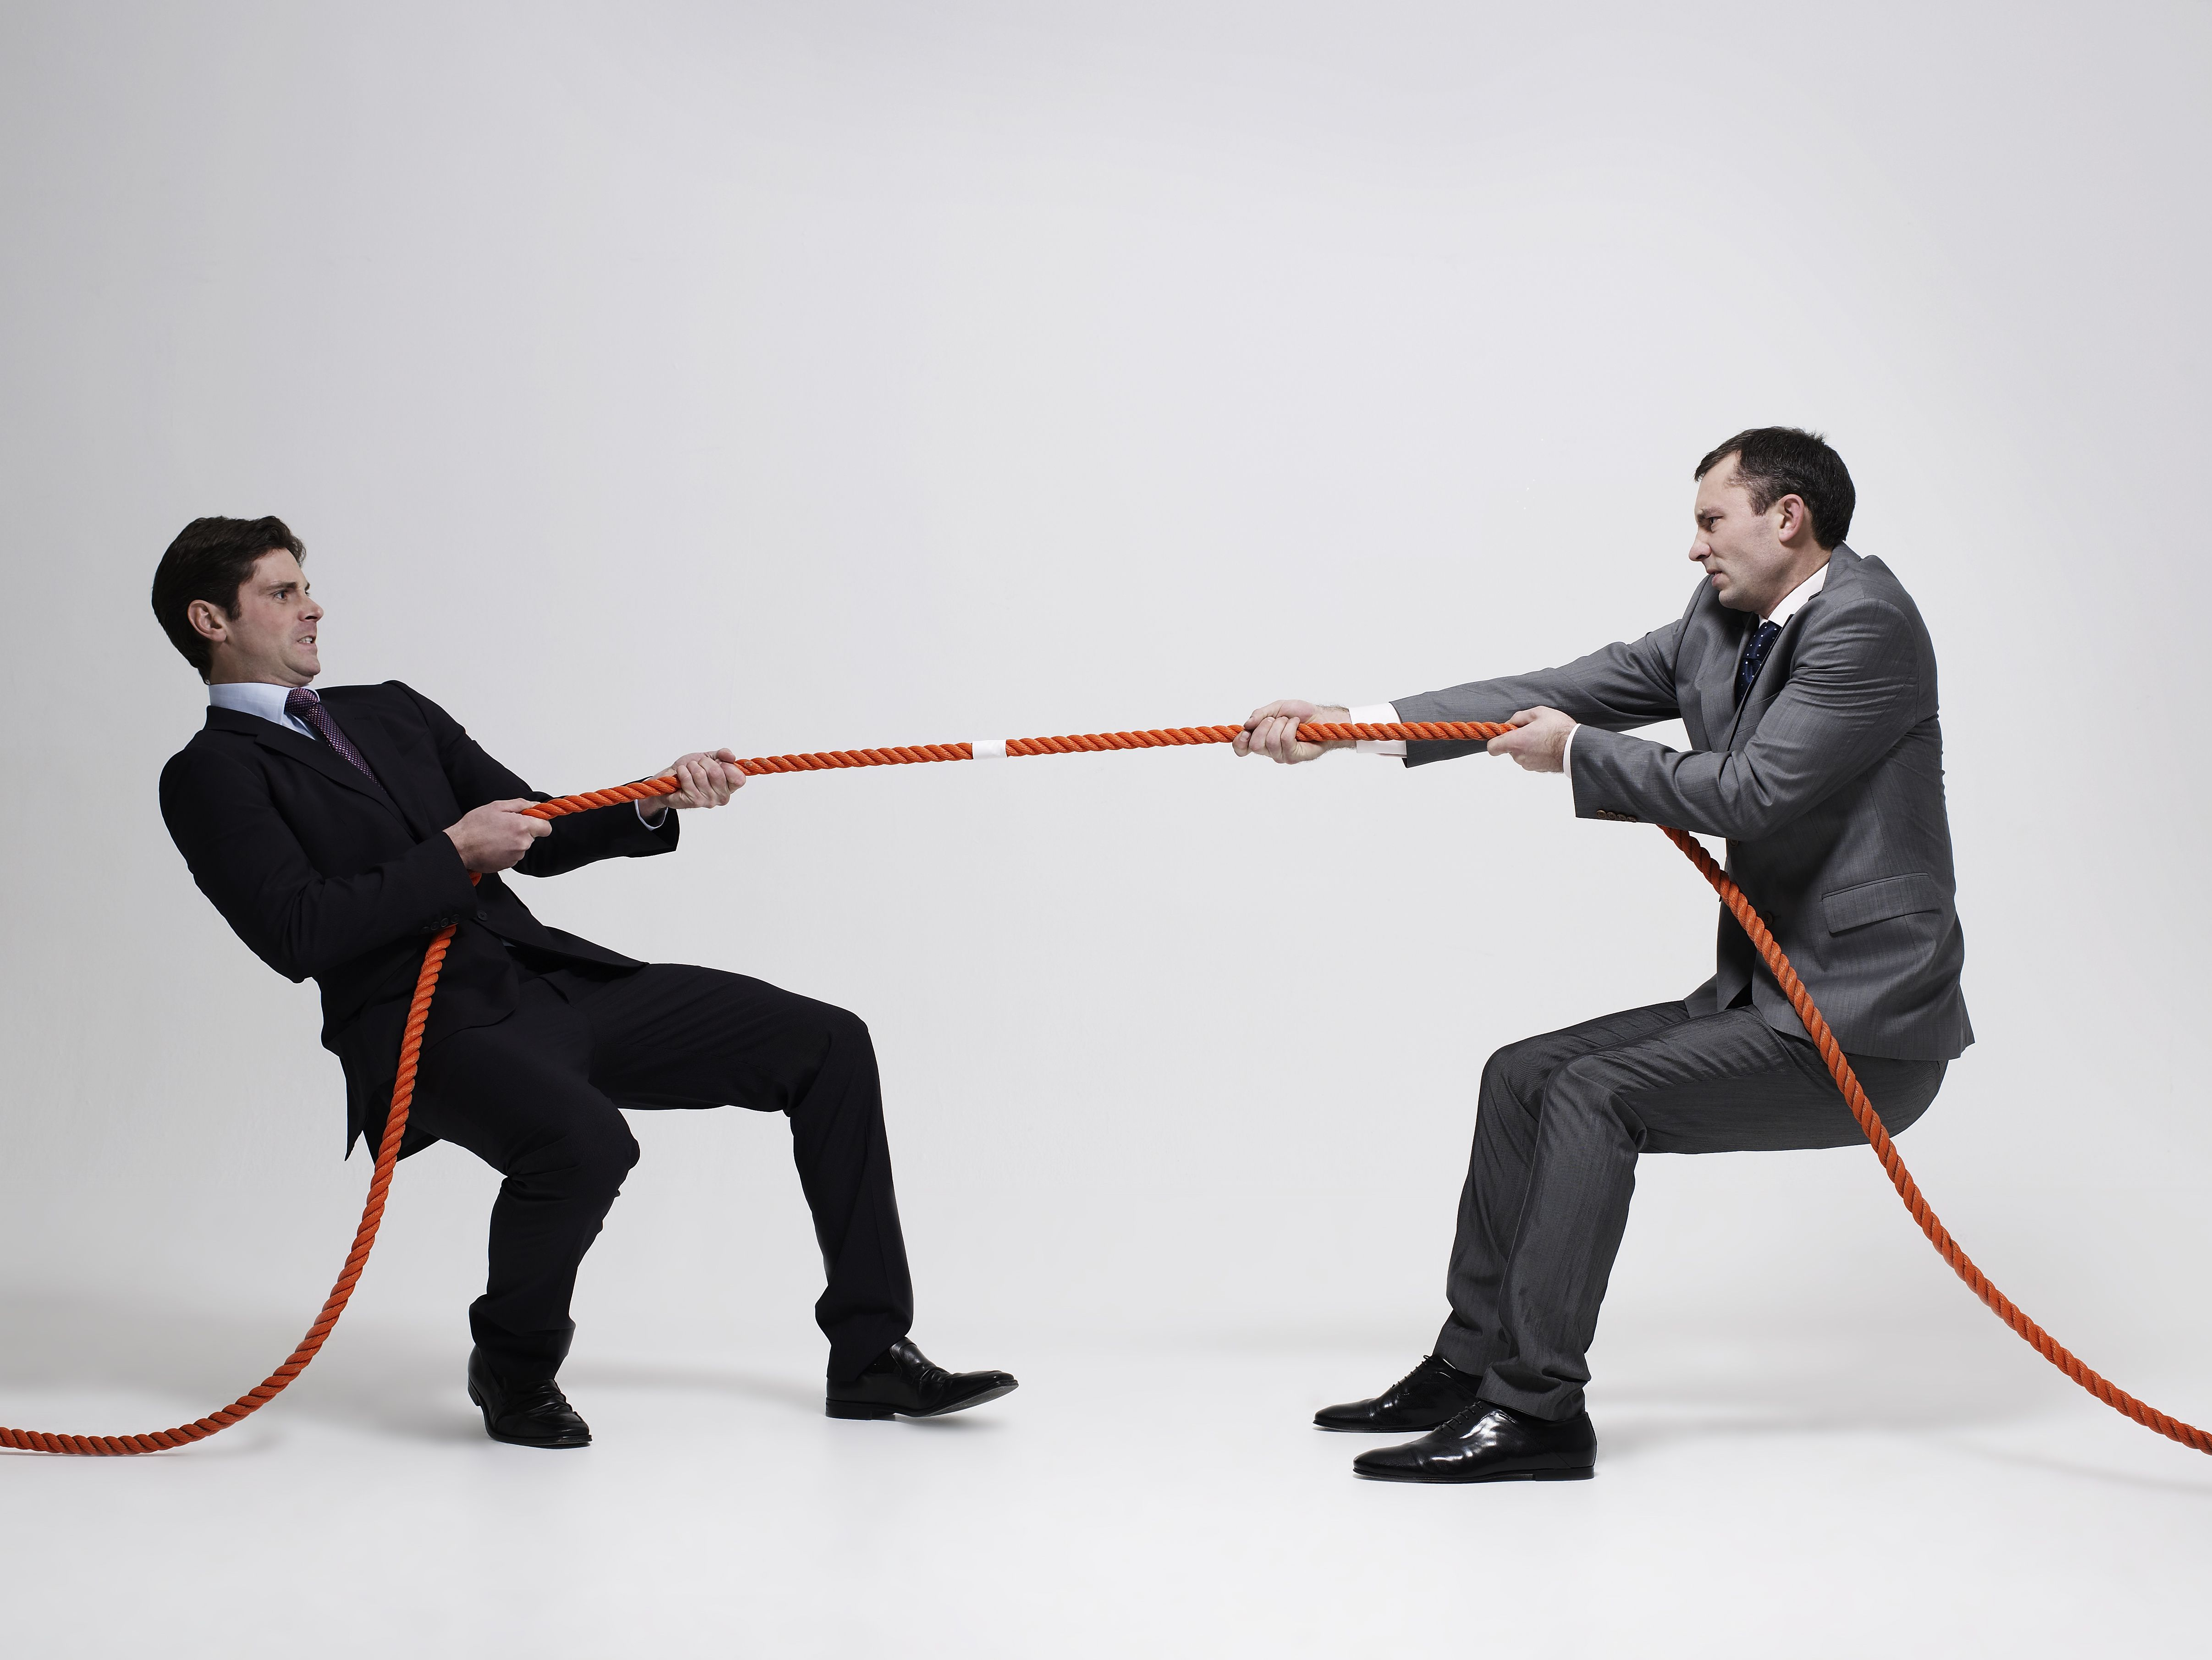 Tug-of-war in suits